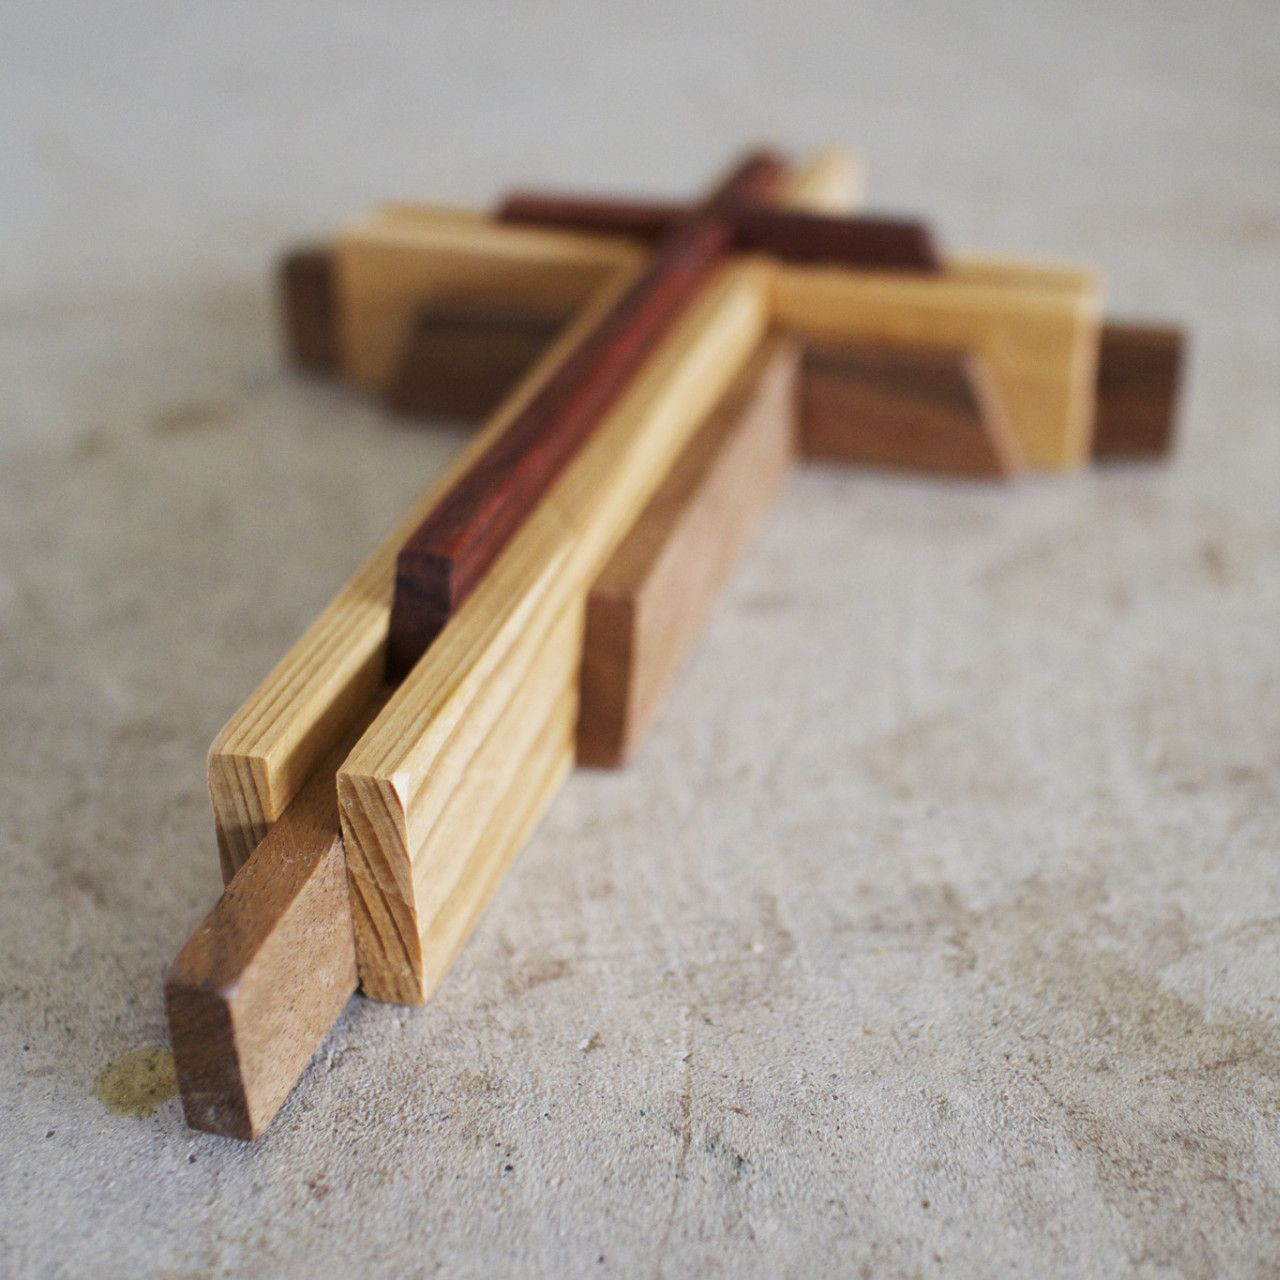 Wooden Cross 9 Inches Tall Crosses Pinterest History Wooden